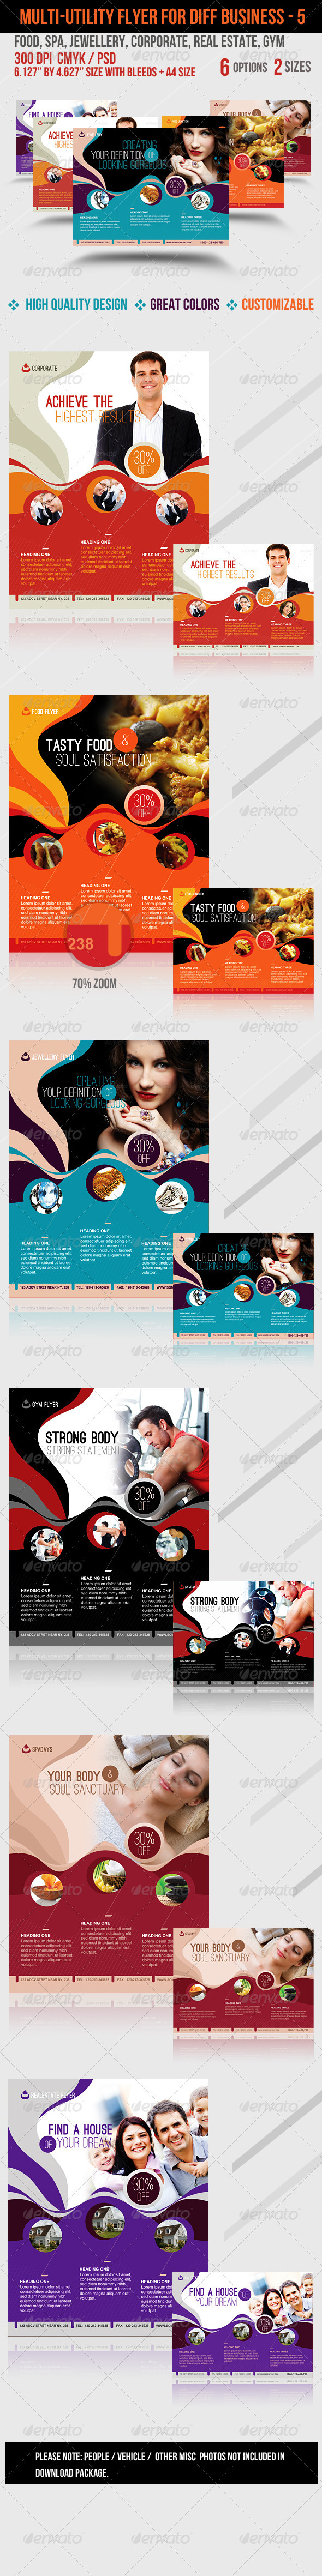 Multi-utility Flyer For Different Business - 5 - Flyers Print Templates